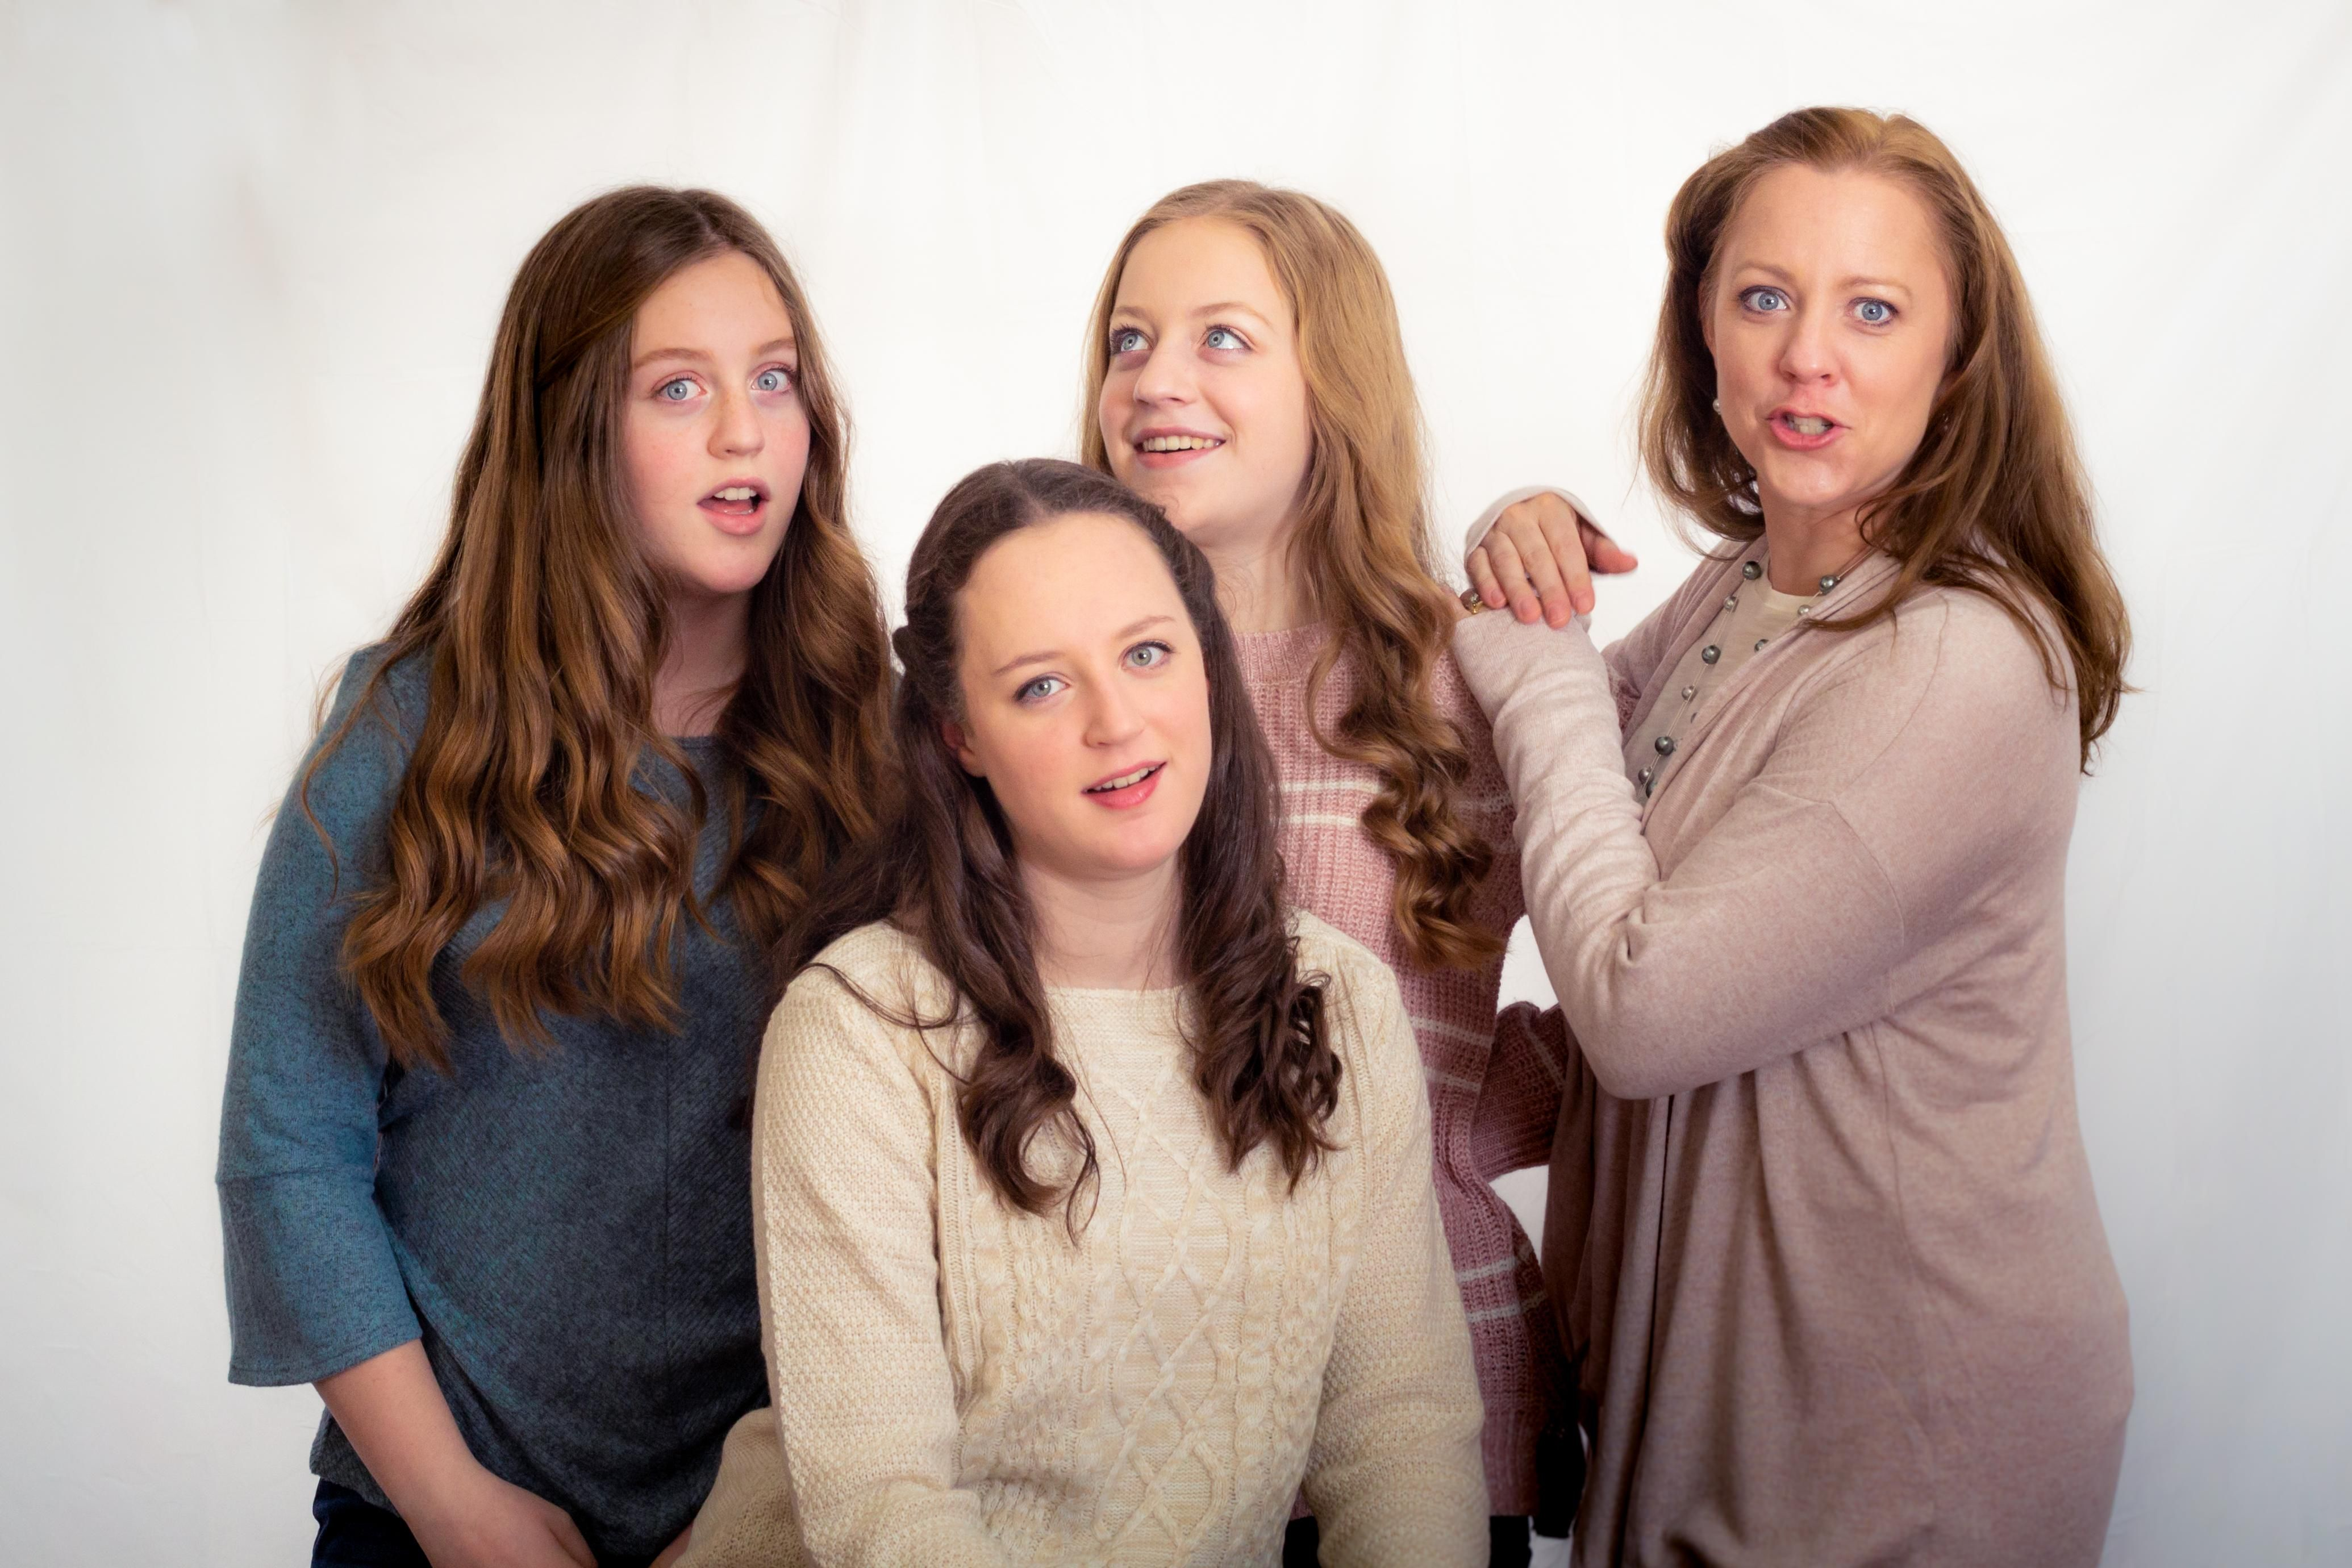 I needed my wife and daughters to smile during a photo shoot, so I told a dad joke.